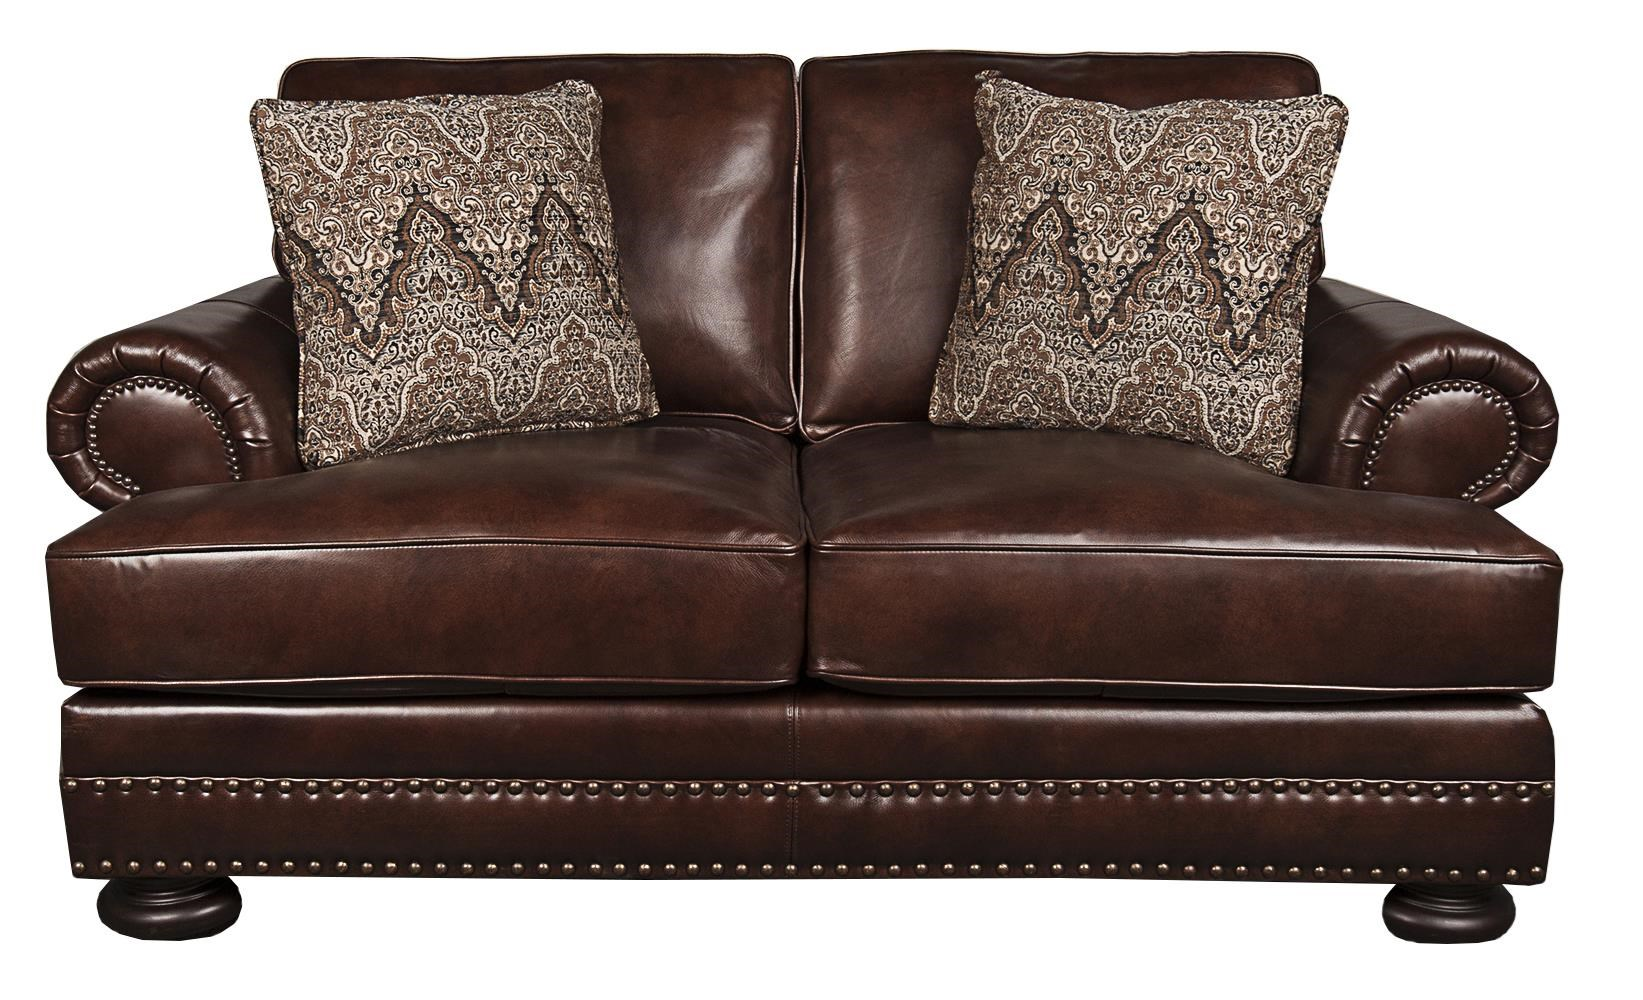 Bon Bernhardt Foster Foster 100% Leather Loveseat